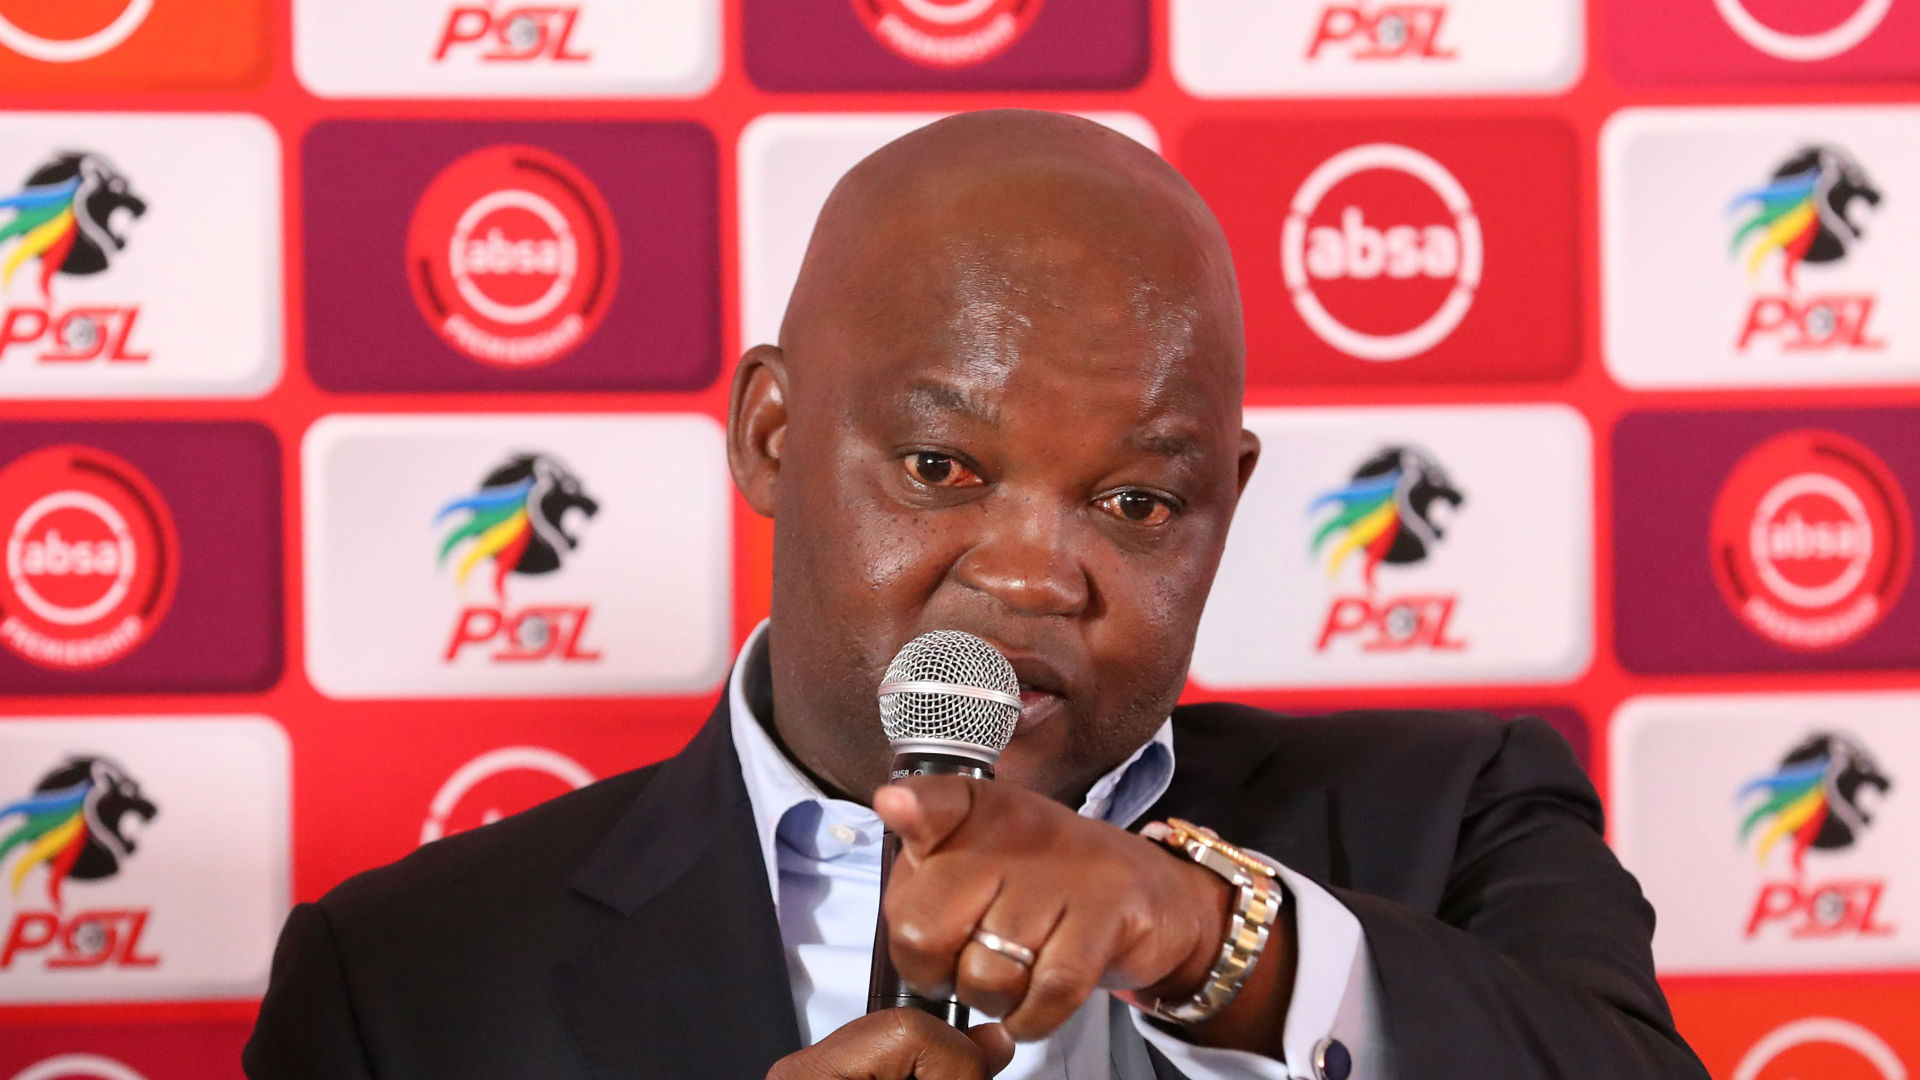 Pitso Mosimane - Mamelodi Sundowns July 30